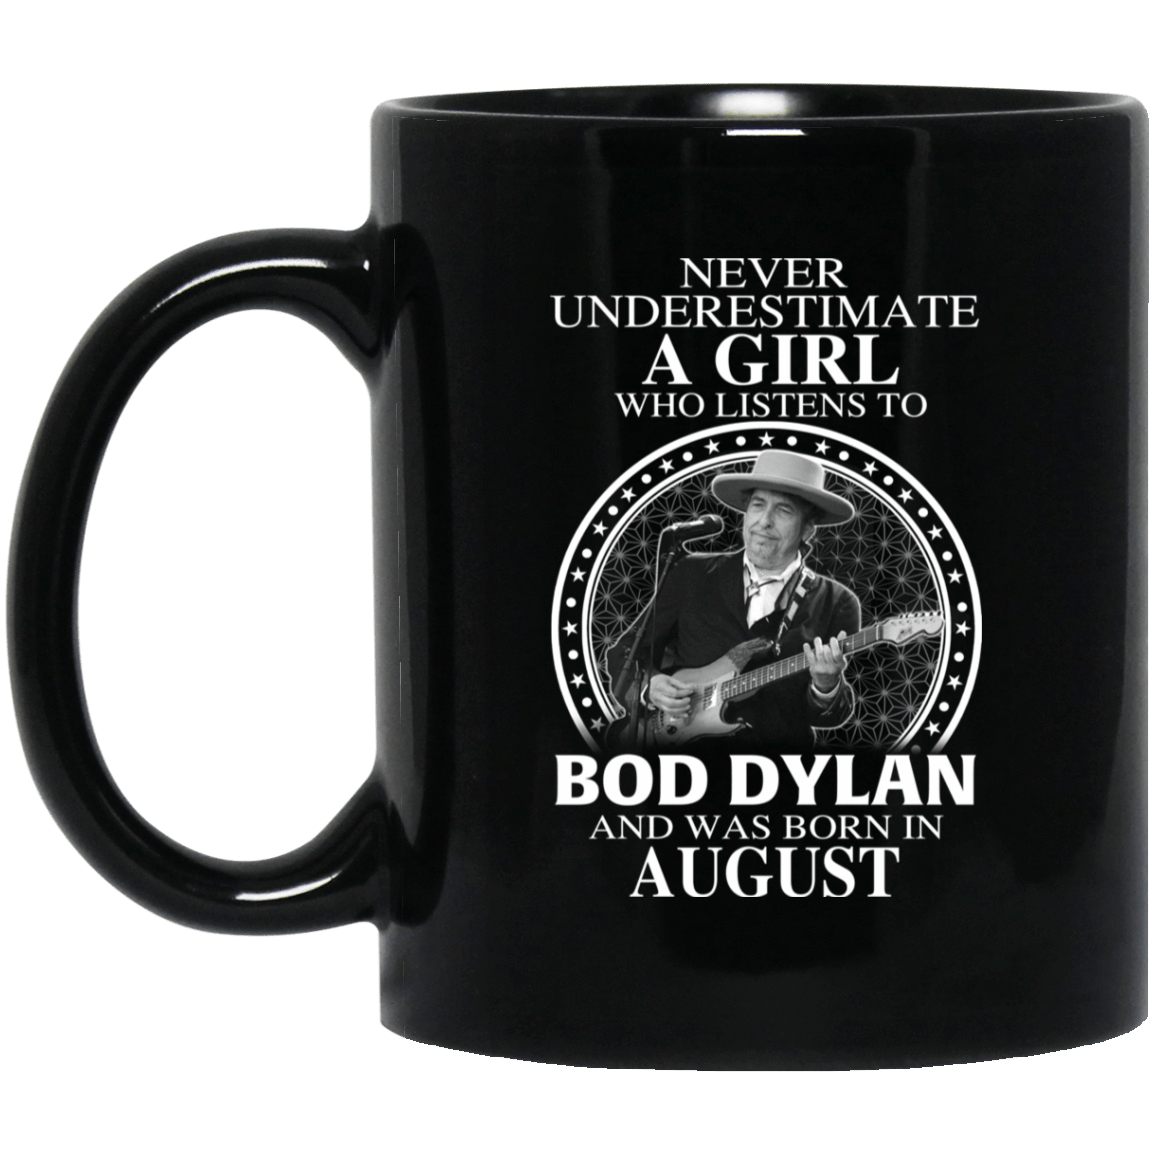 A Girl Who Listens To Bob Dylan And Was Born In August Mug 1065-10181-76153682-49307 - Tee Ript